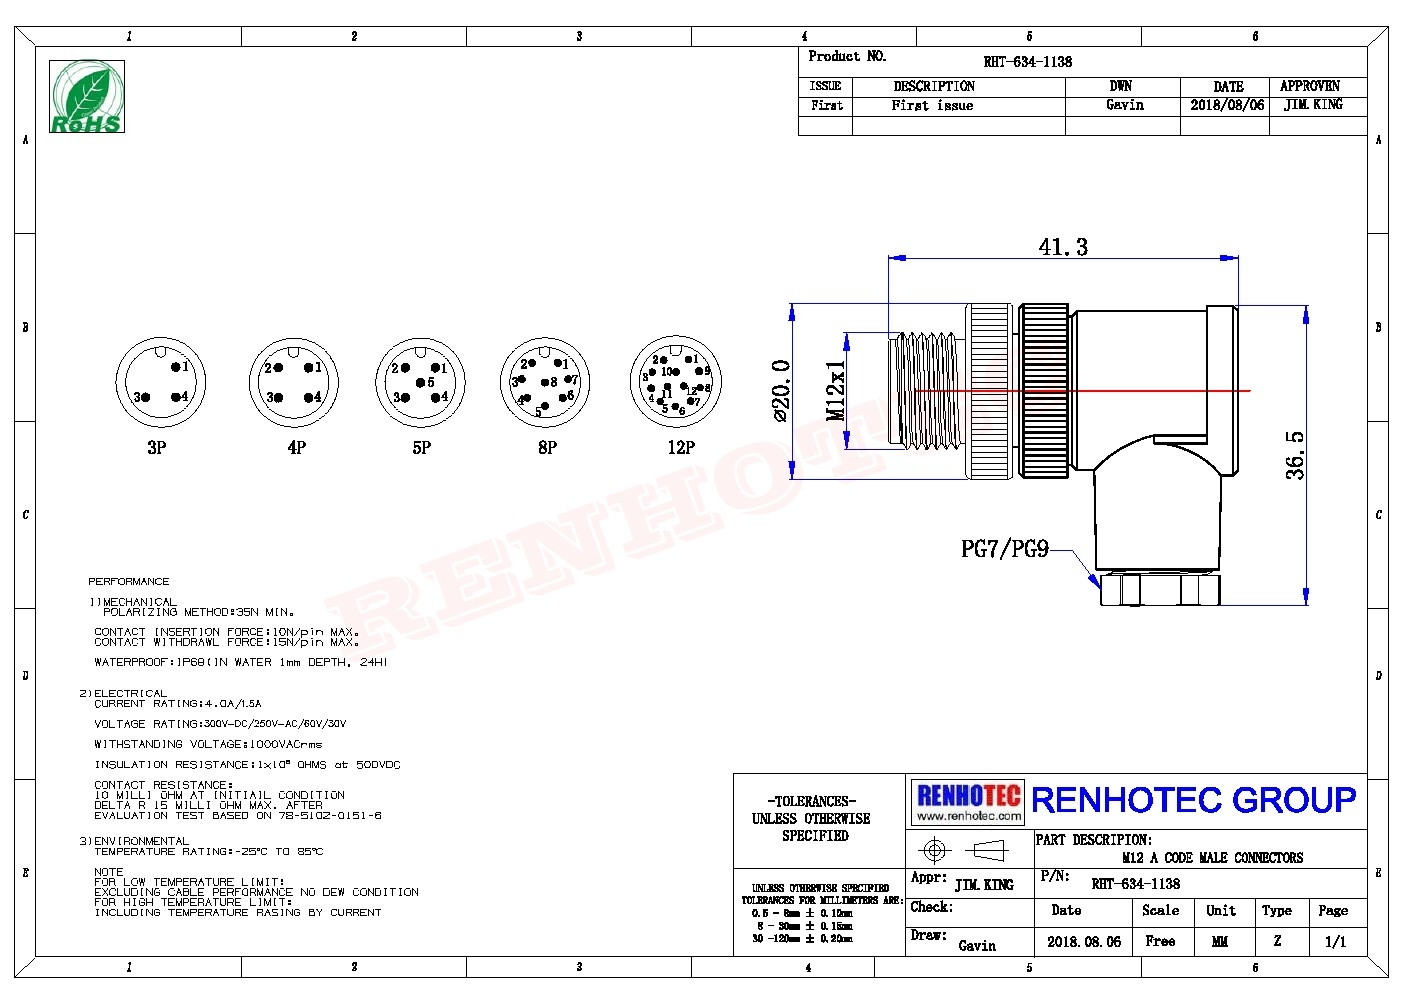 M12 5 Position Angled Male A Code With Termination Male M Wiring Diagram on